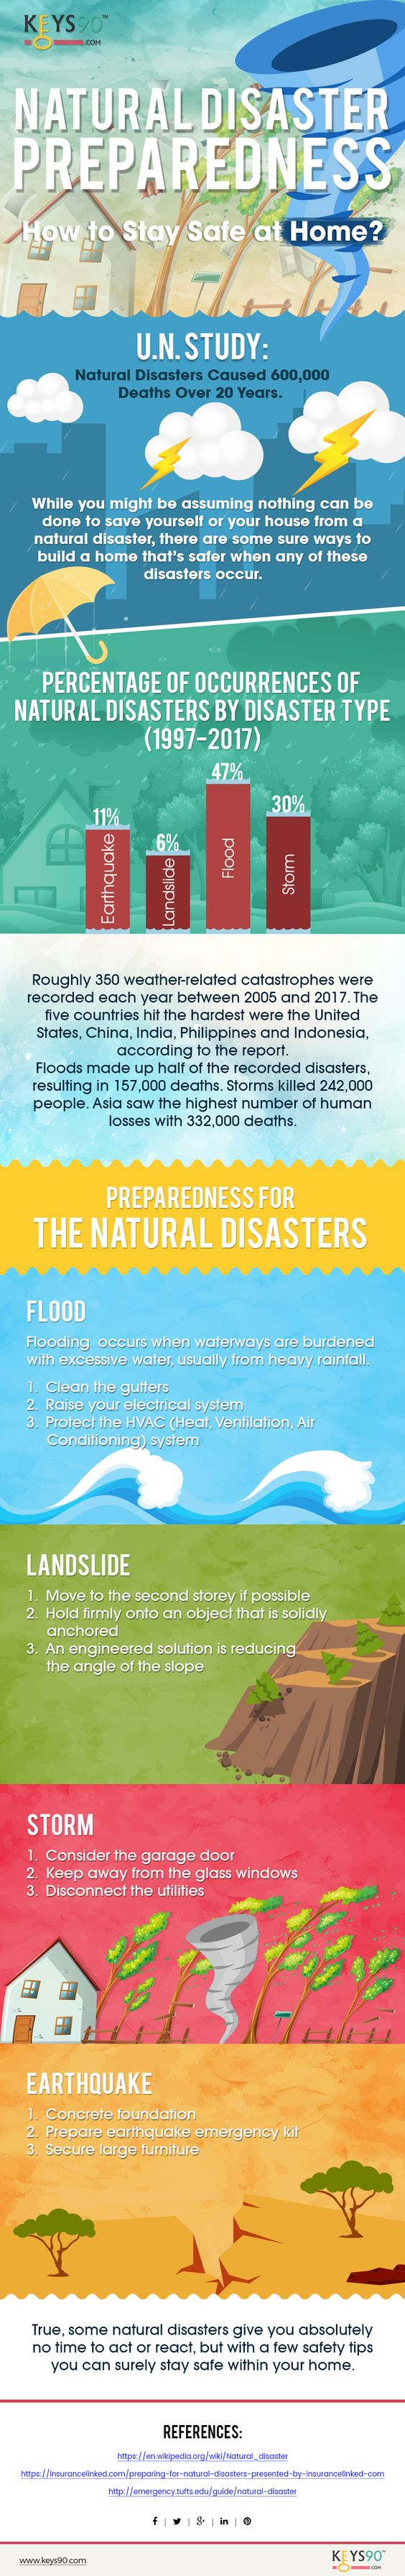 Natural Disaster Preparedness-infographic-plaza